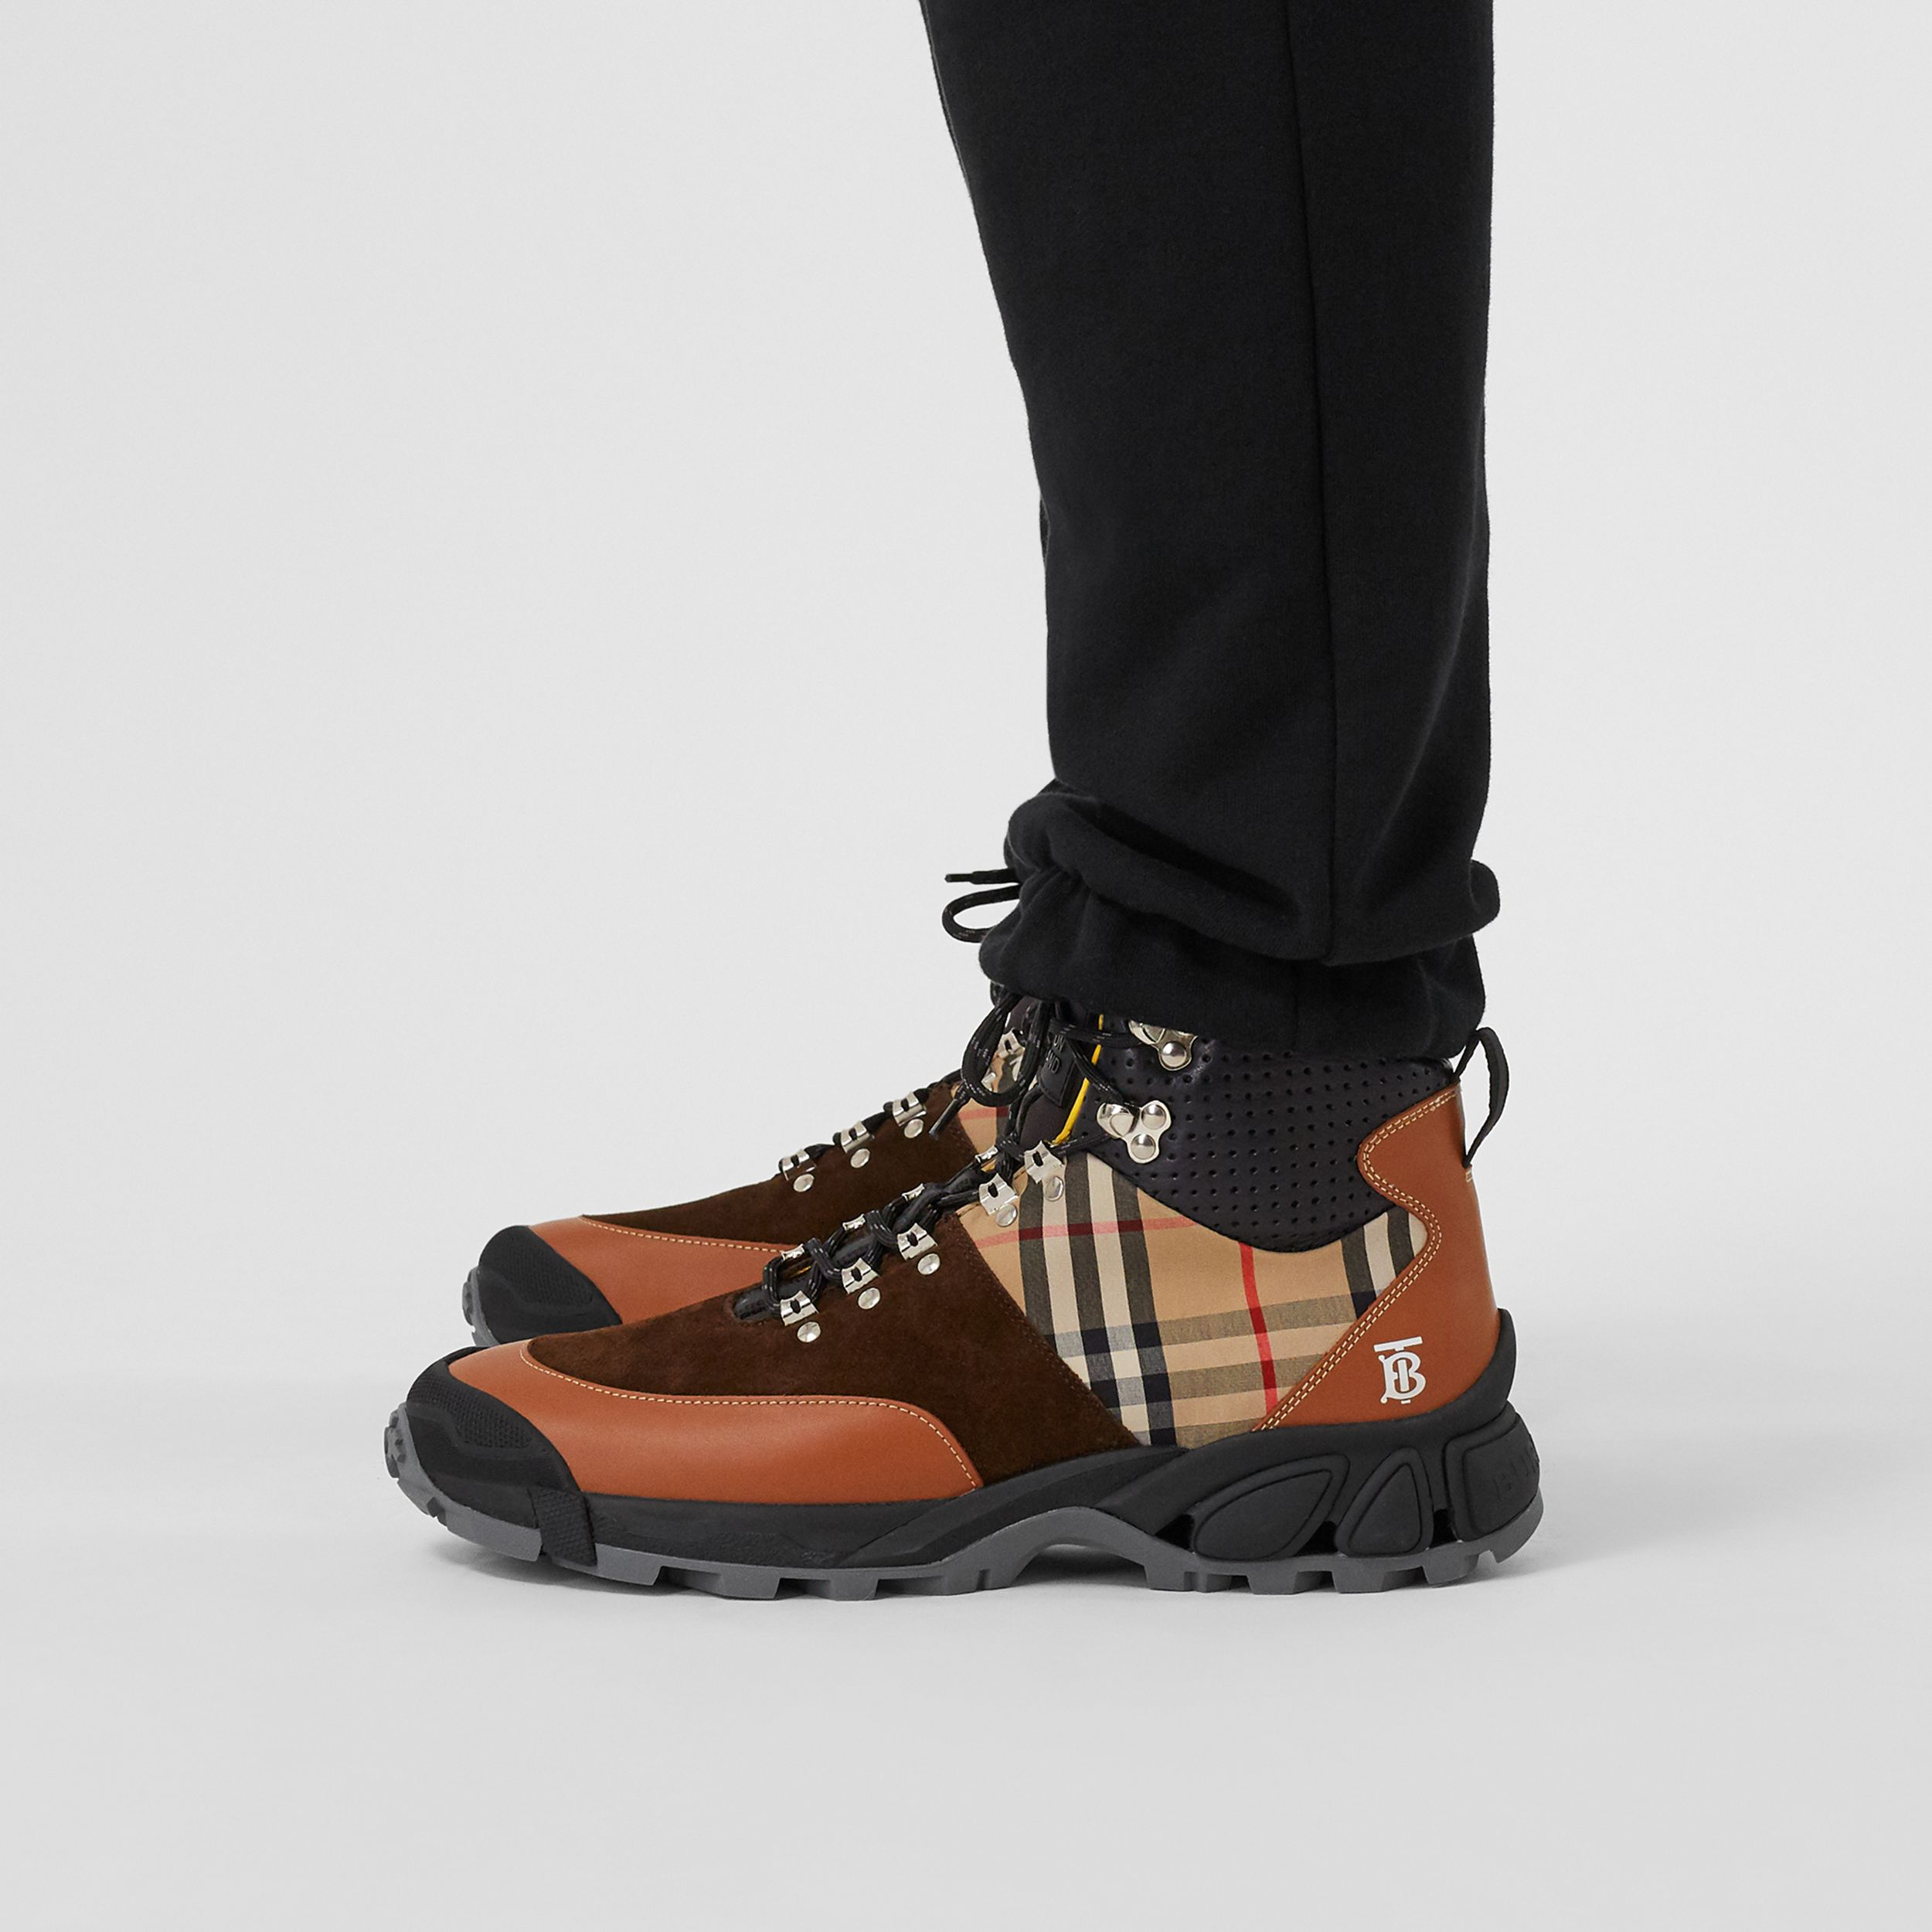 Leather, Vintage Check Cotton and Suede Tor Boots in Tan Mix - Men | Burberry - 3